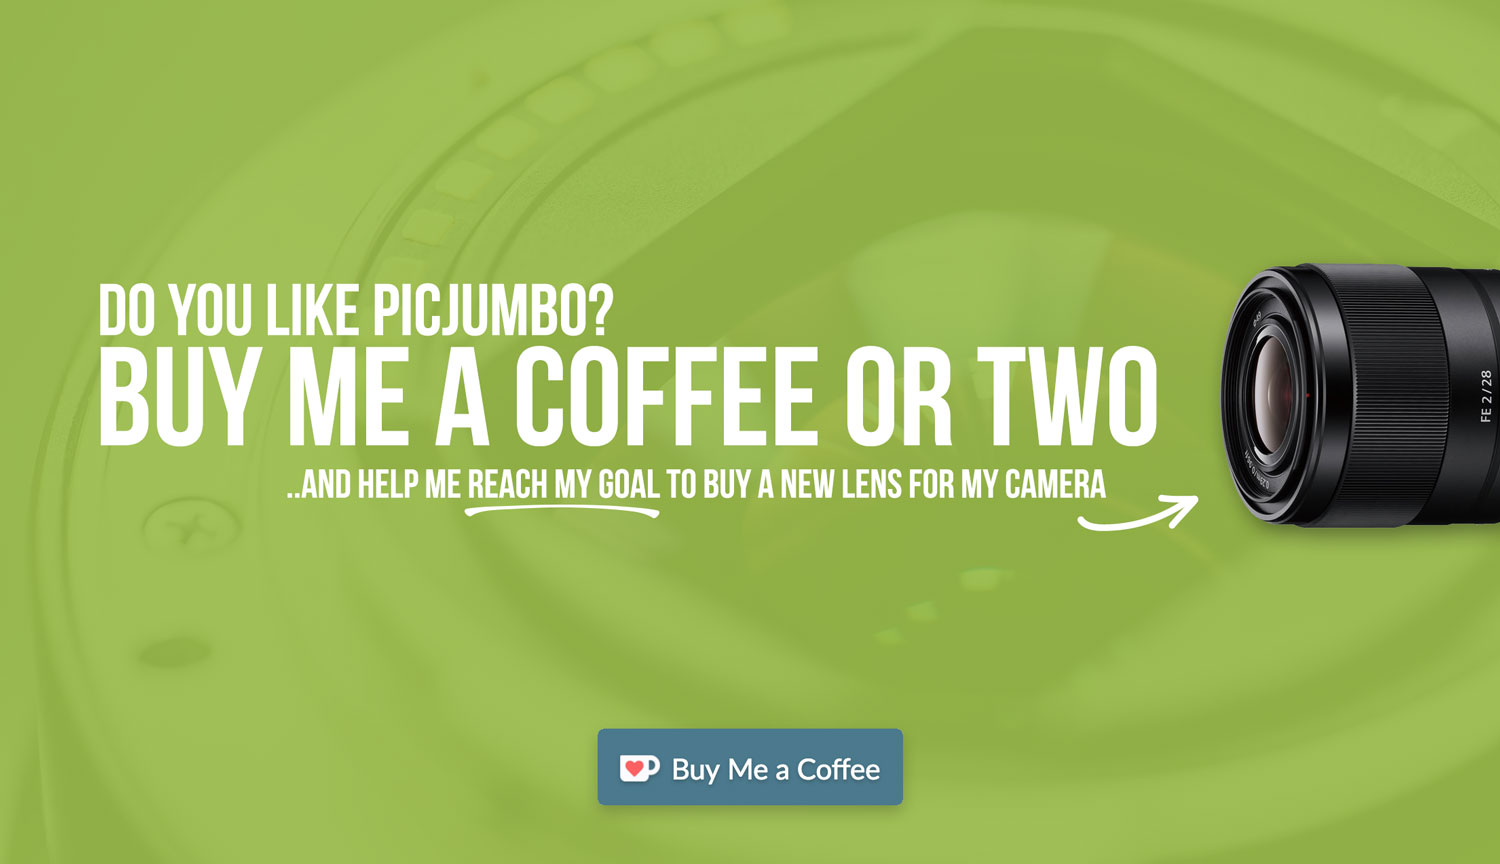 Do you like picjumbo? Buy me a coffee or two! — picjumbo BLOG